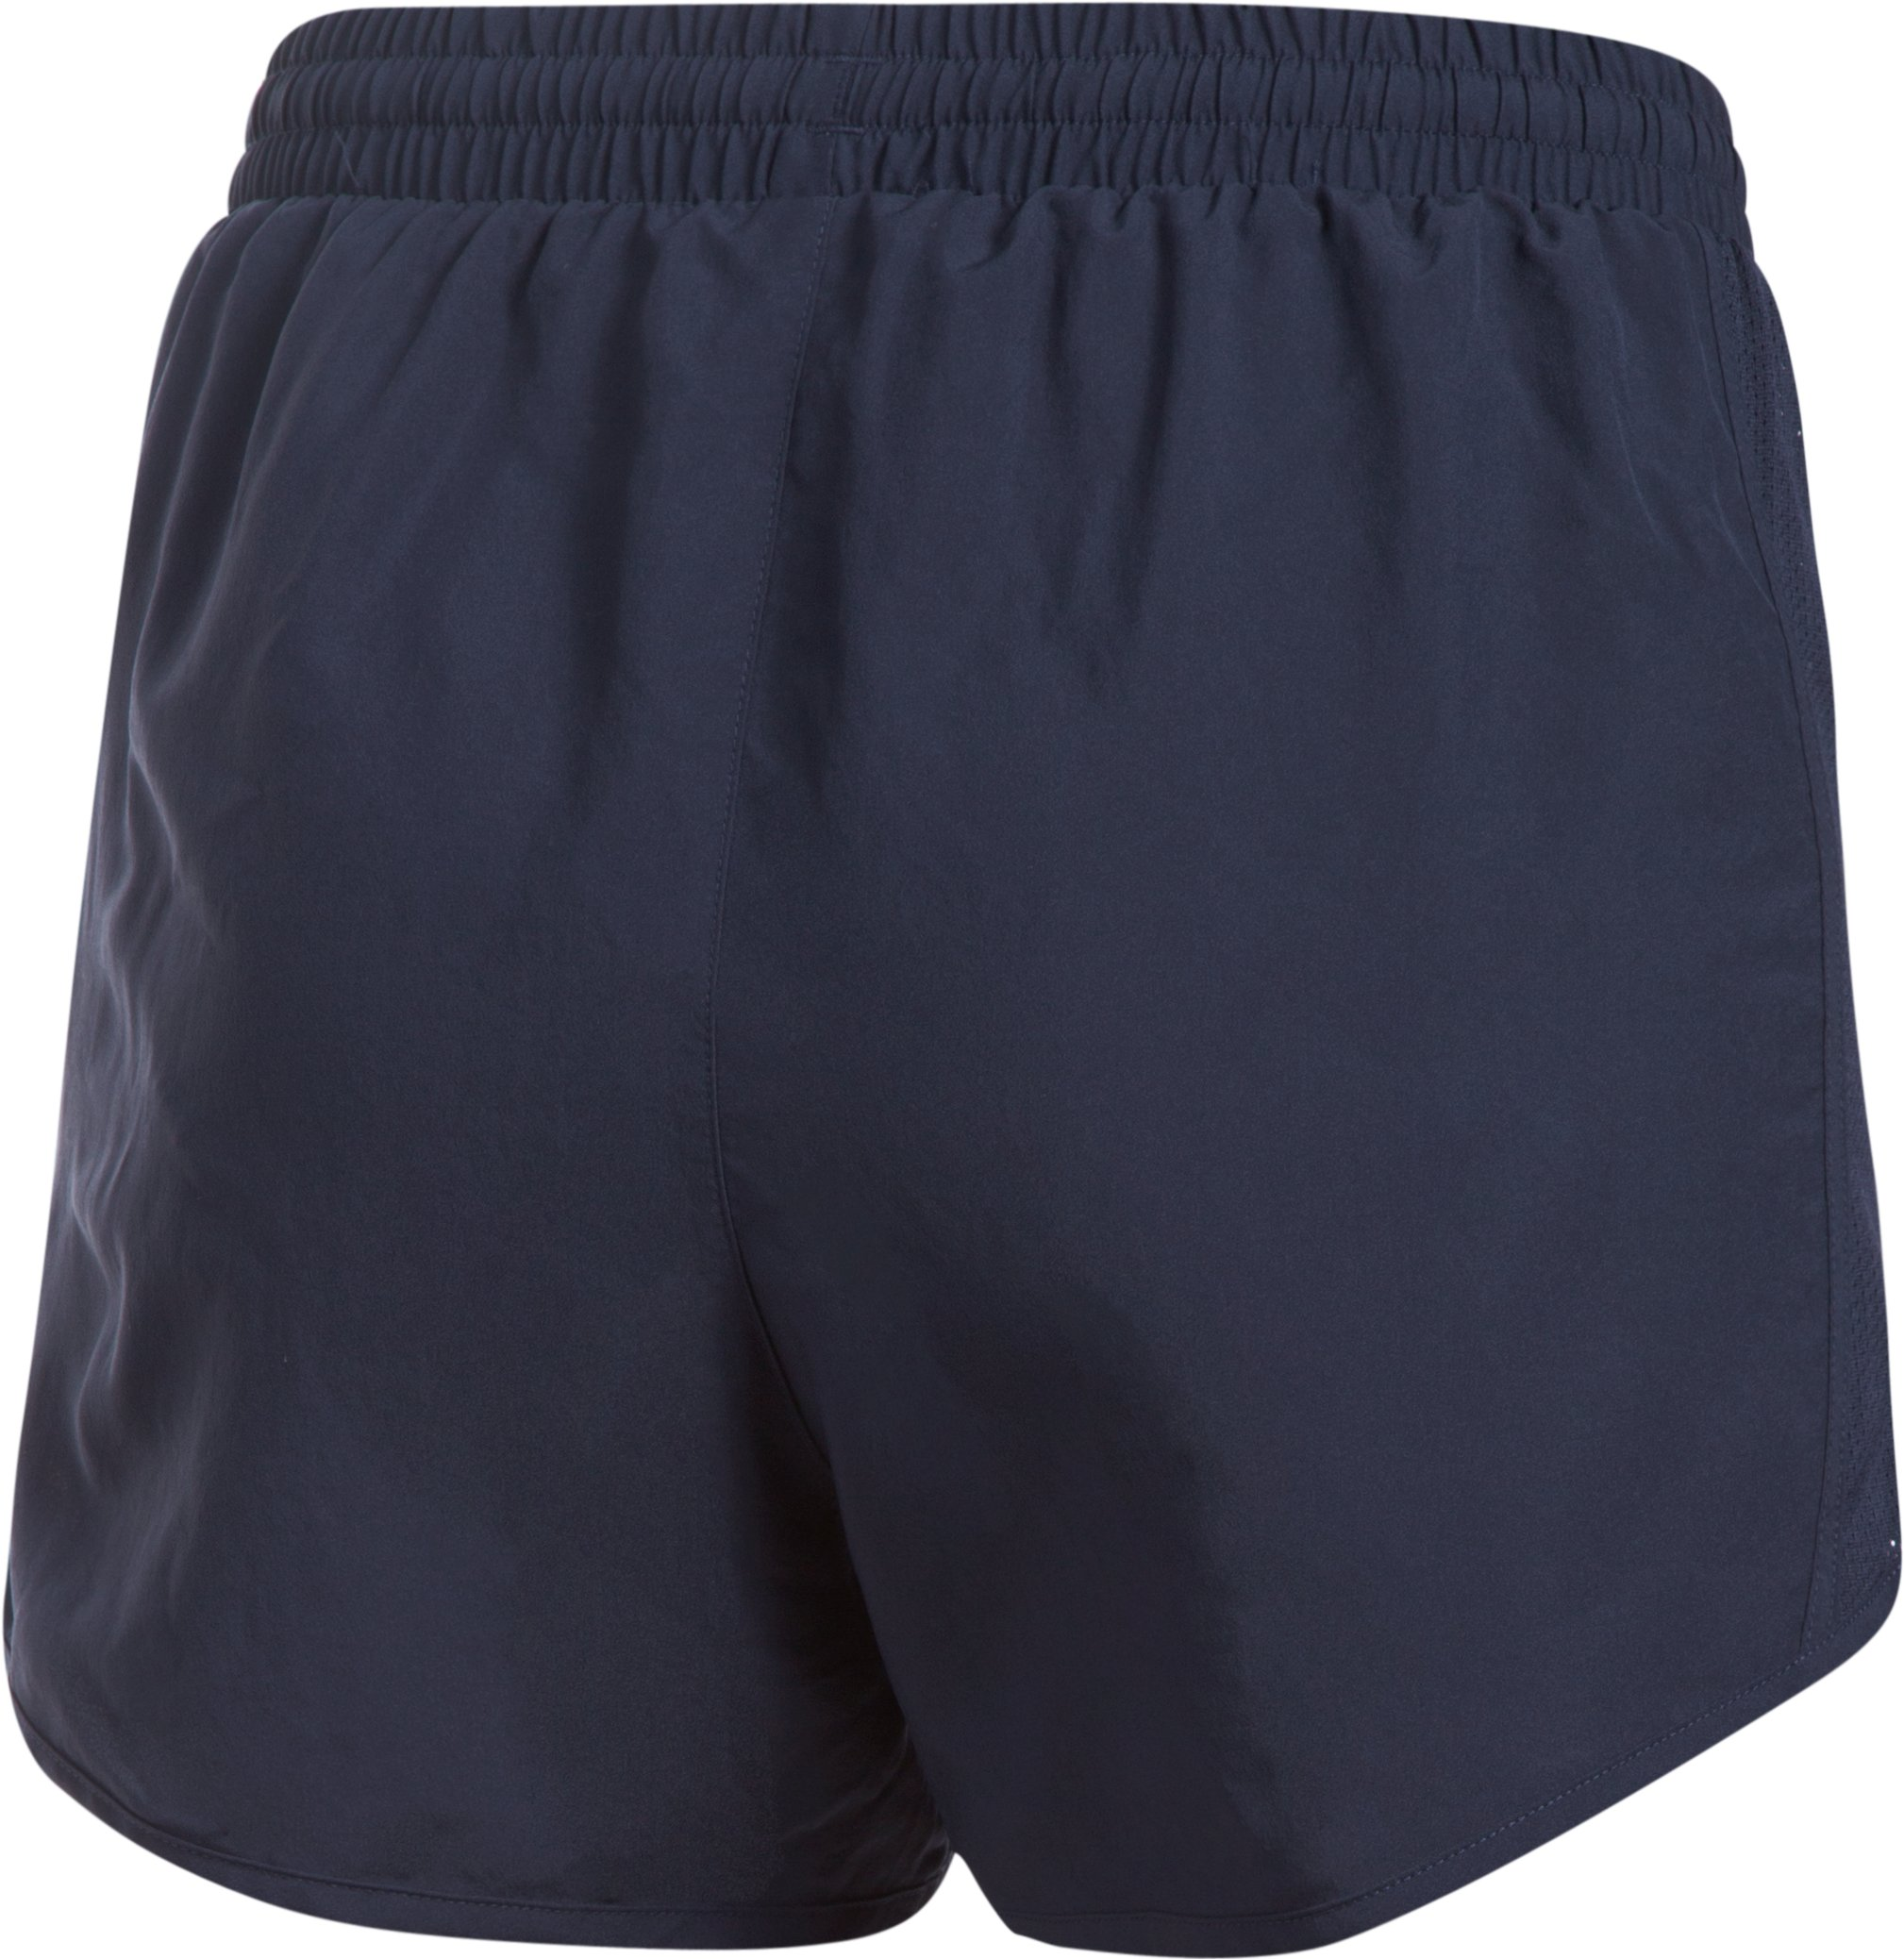 Women's Notre Dame Fly By Shorts, Midnight Navy, undefined